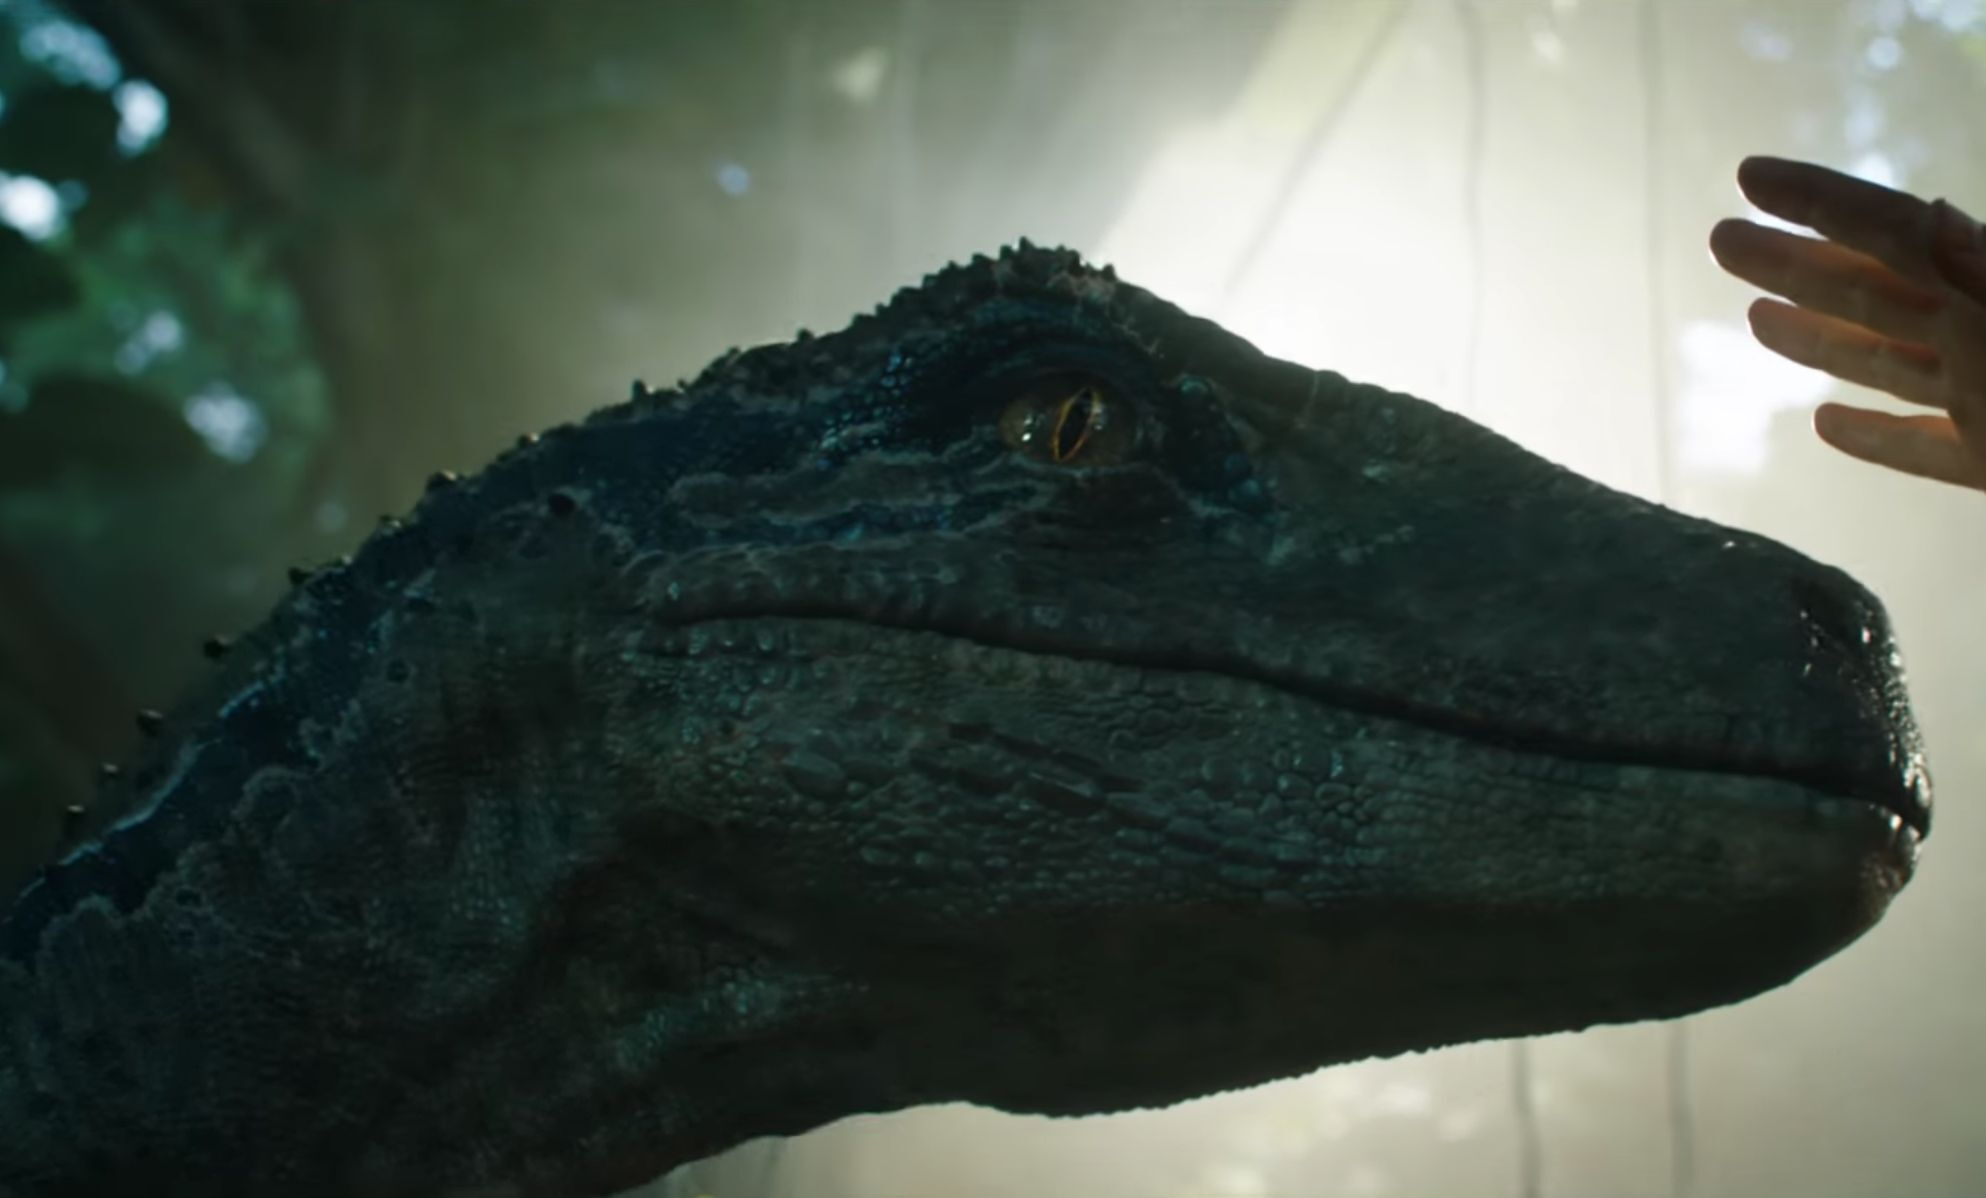 How long after the events of Jurassic World is Fallen Kingdom set?